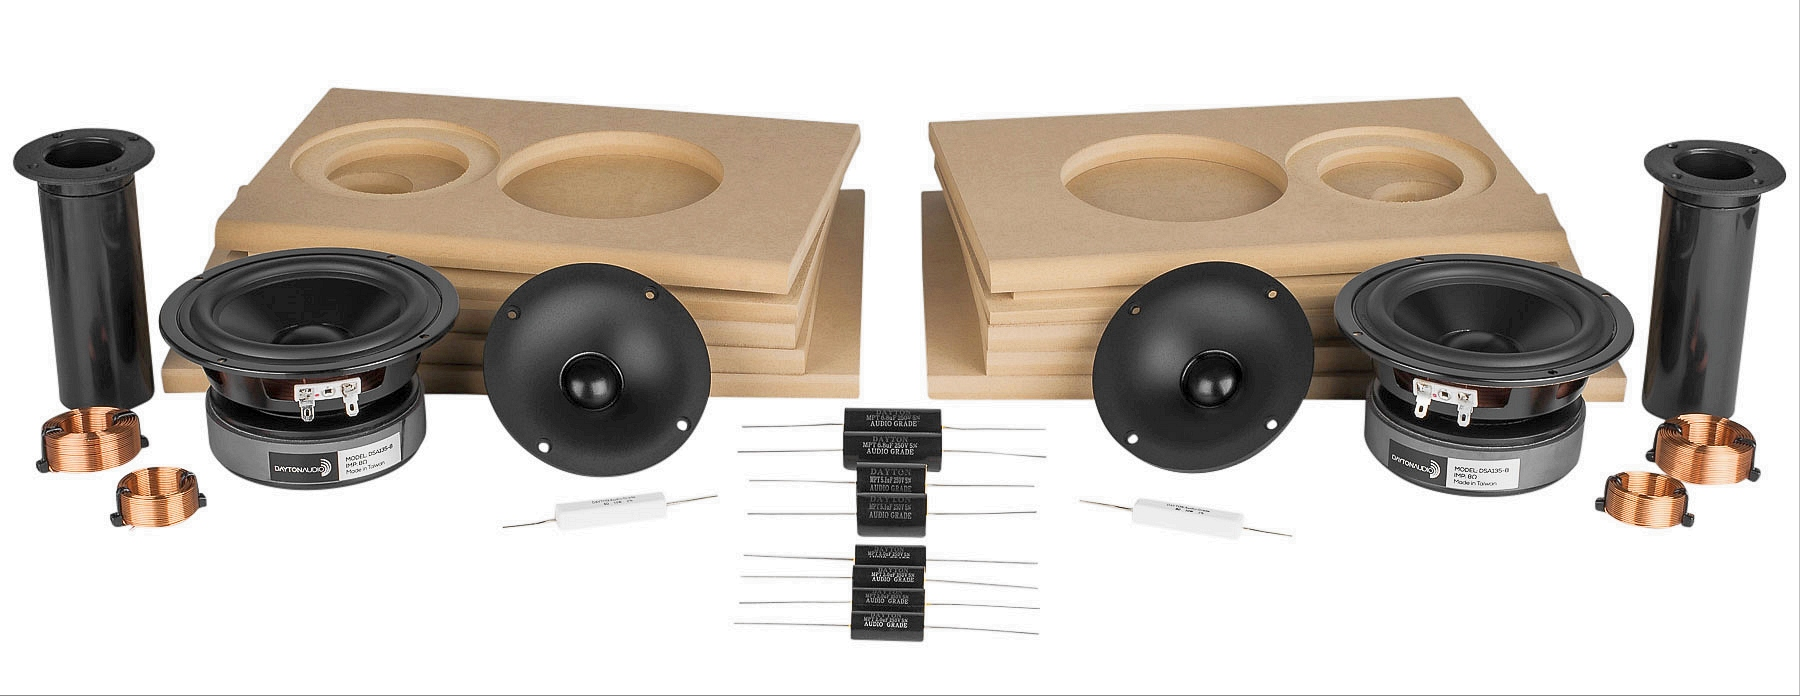 Parts Express DIY C-Note speakers kit.jpg